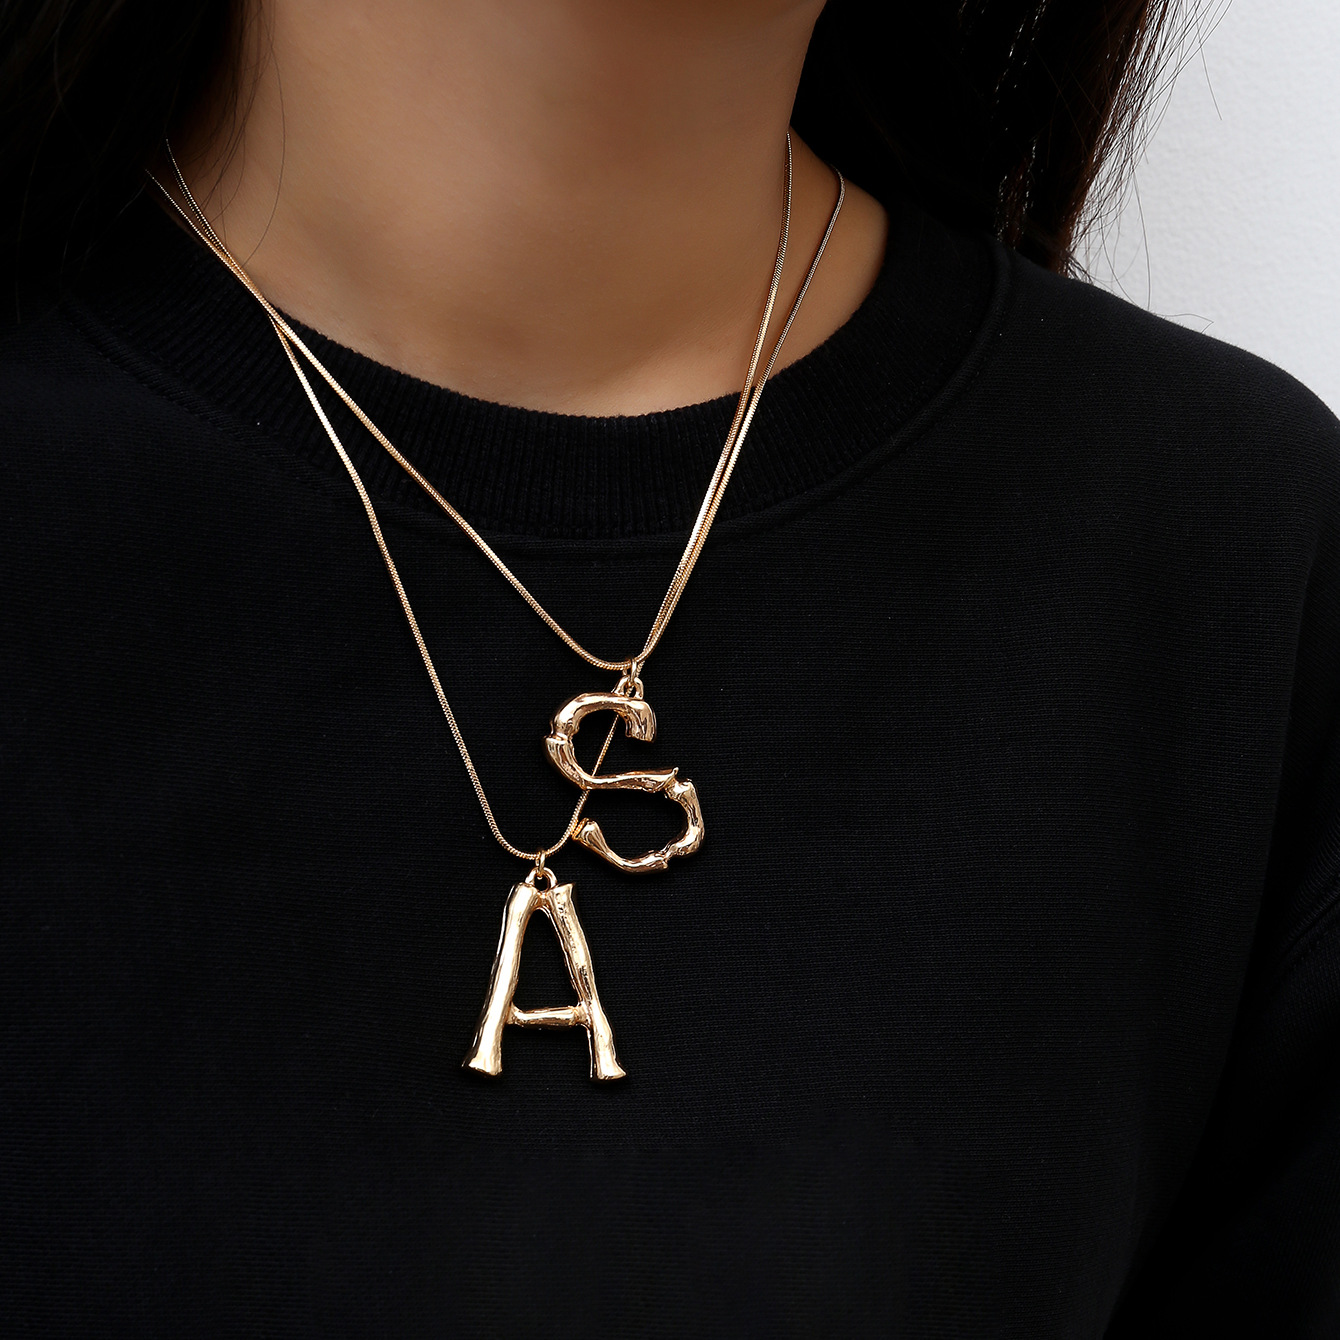 ZIIME 2019 New Alphabet Initial Letter Pendant Necklace Female Gold Silver Color Snake Chain Choker Collar Necklaces for Women(China)